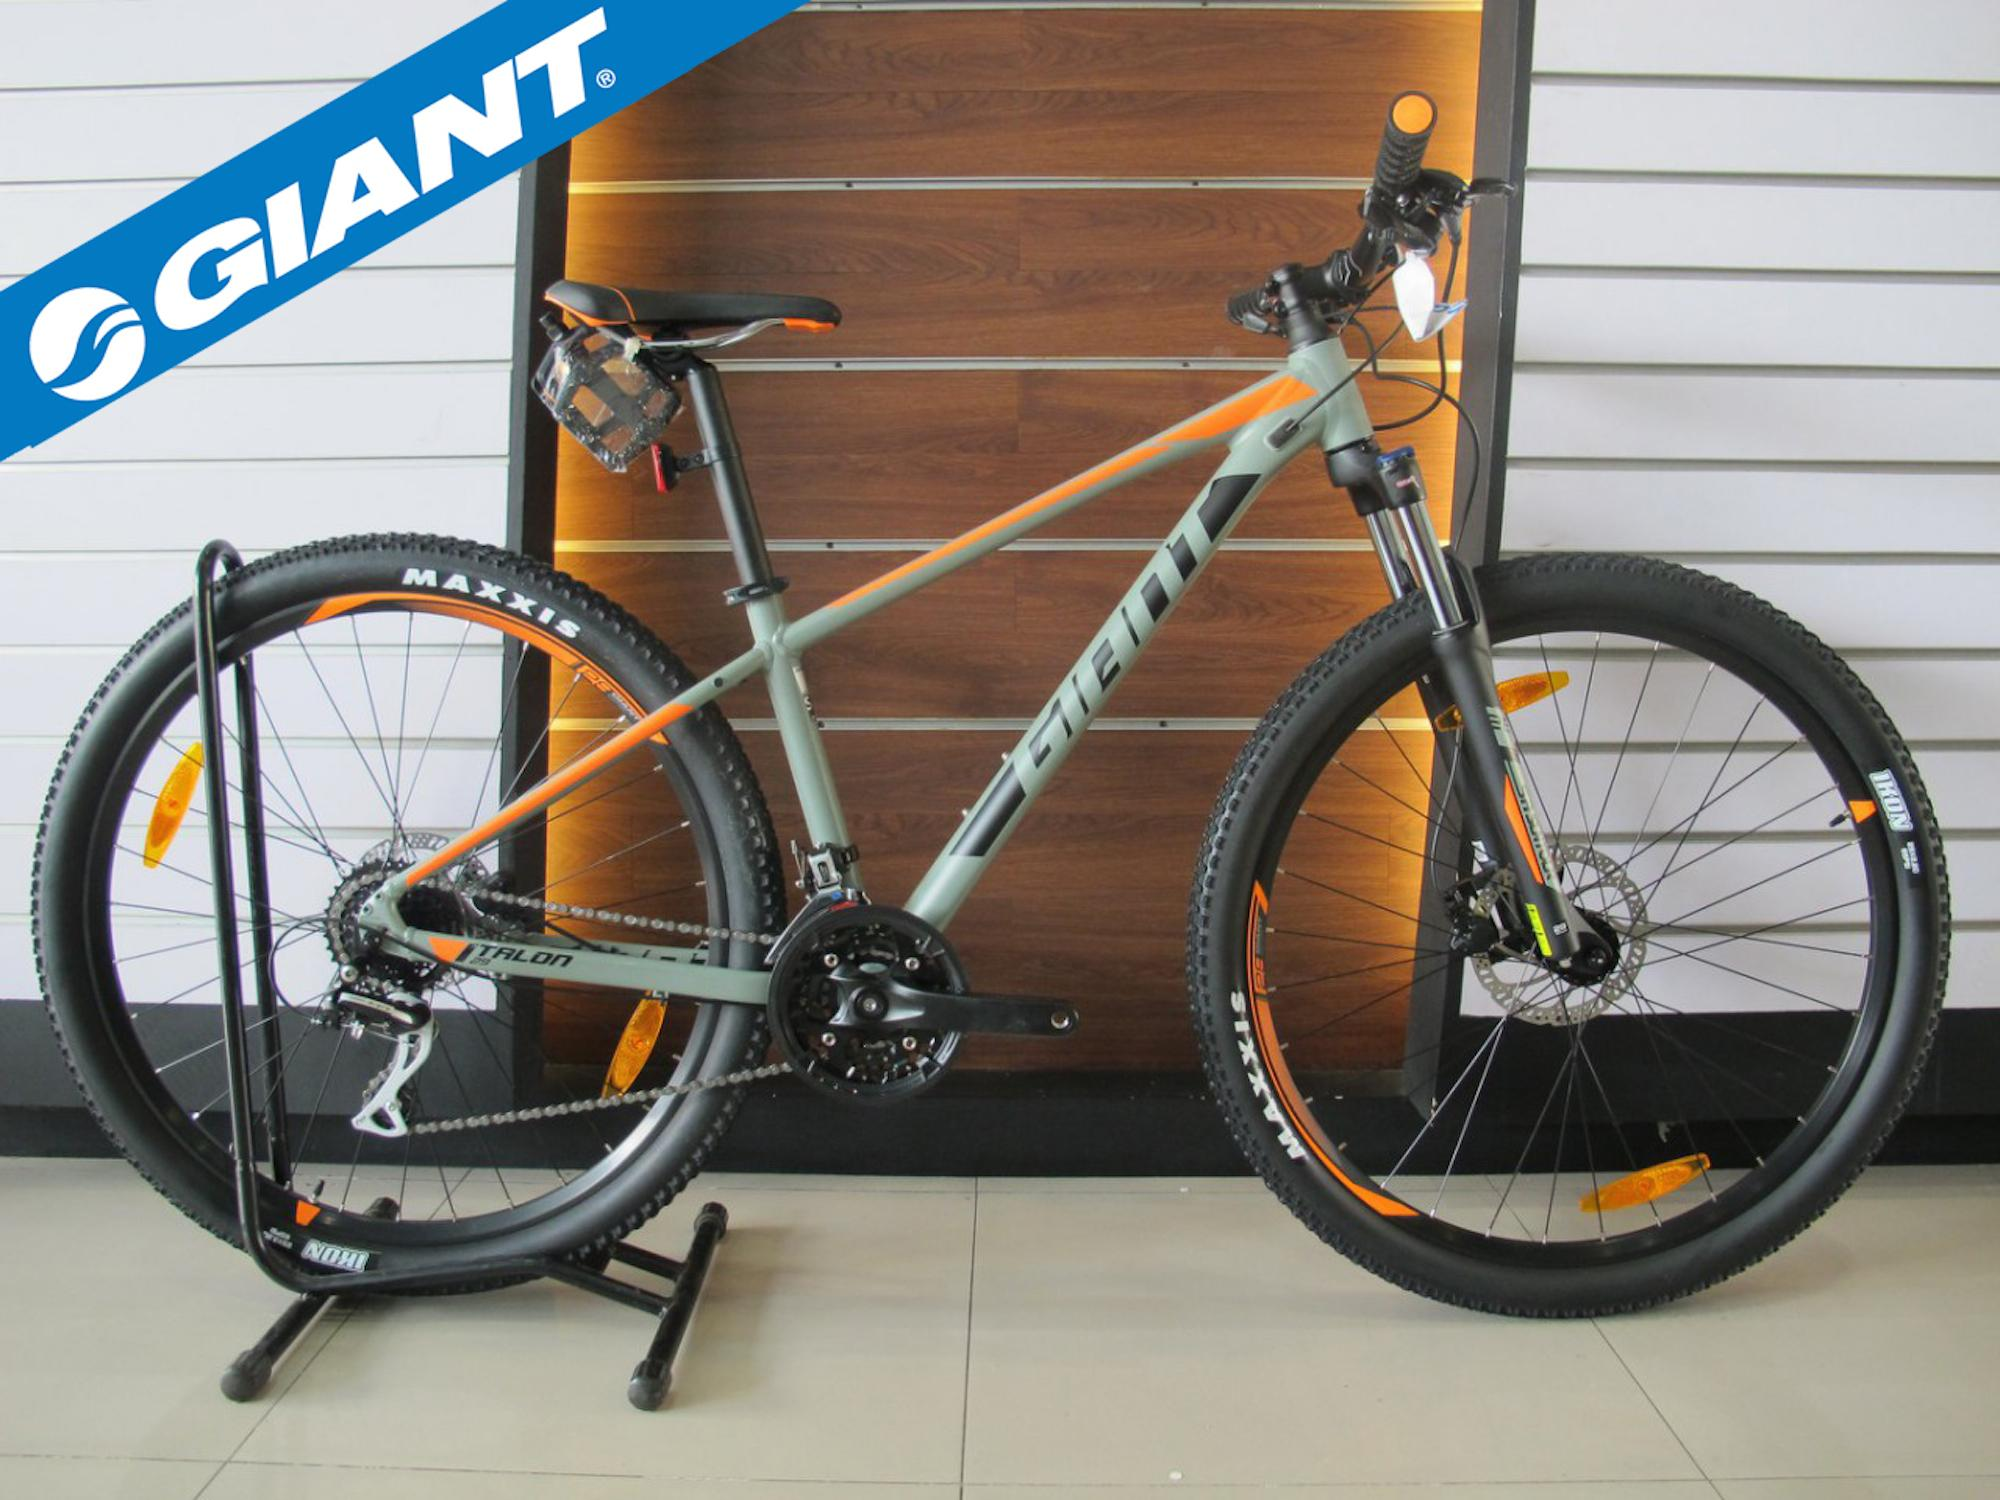 343dace736b Giant Philippines - Giant Mountain Bike for sale - prices & reviews ...